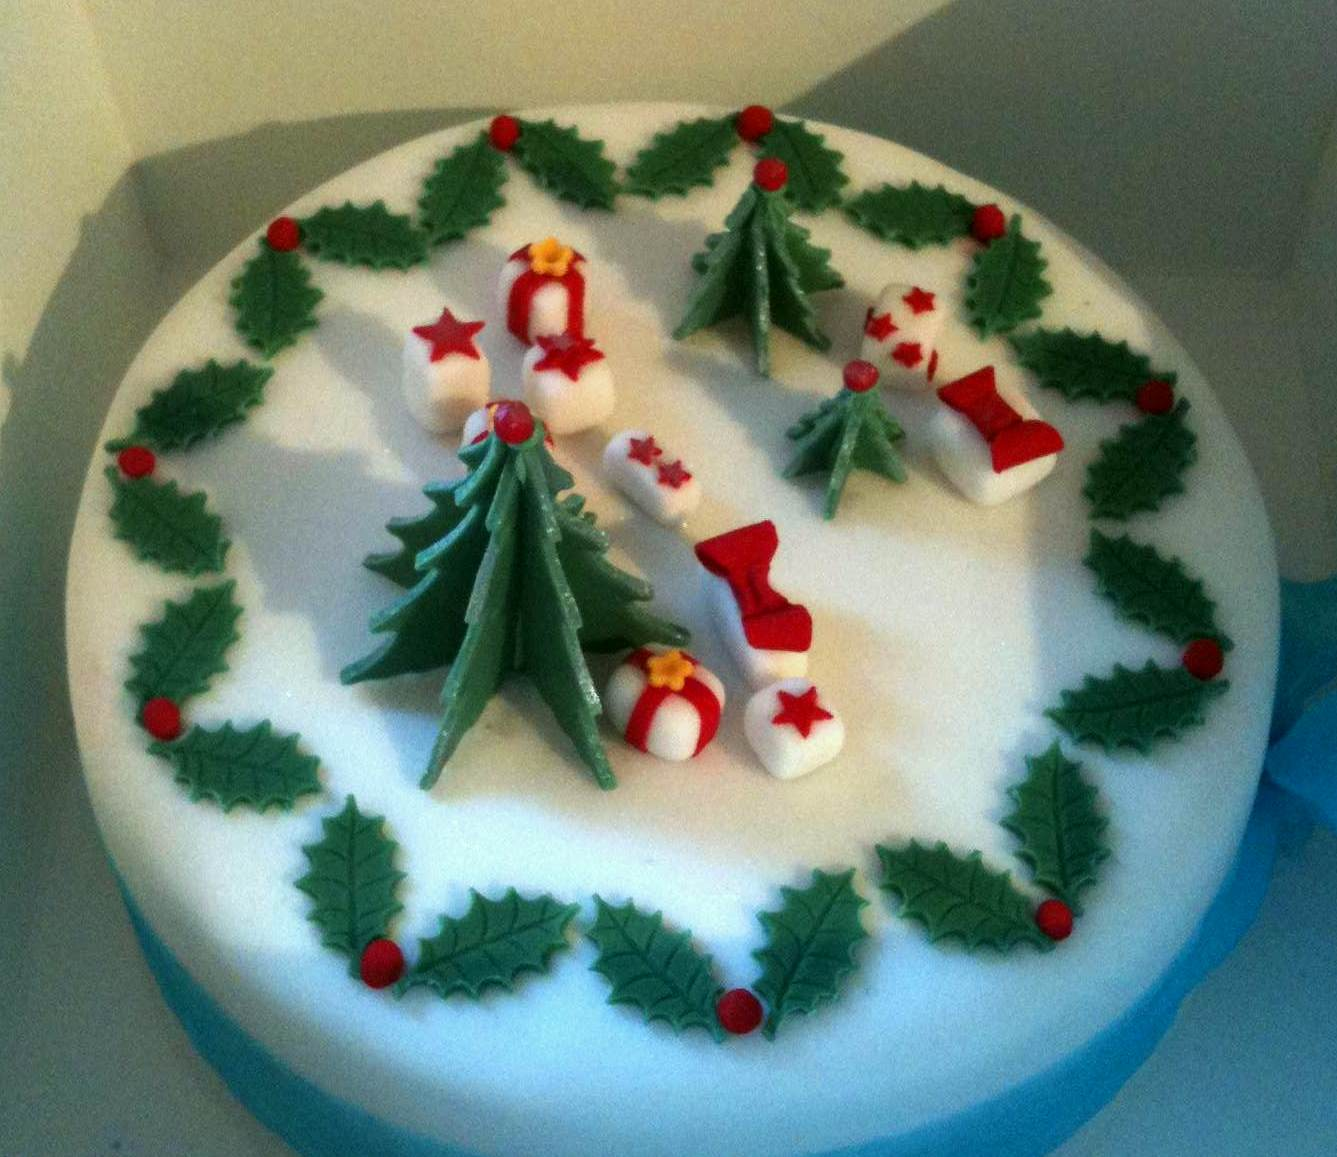 Picturespool christmas cakes pictures christmas cakes for Iced christmas cakes